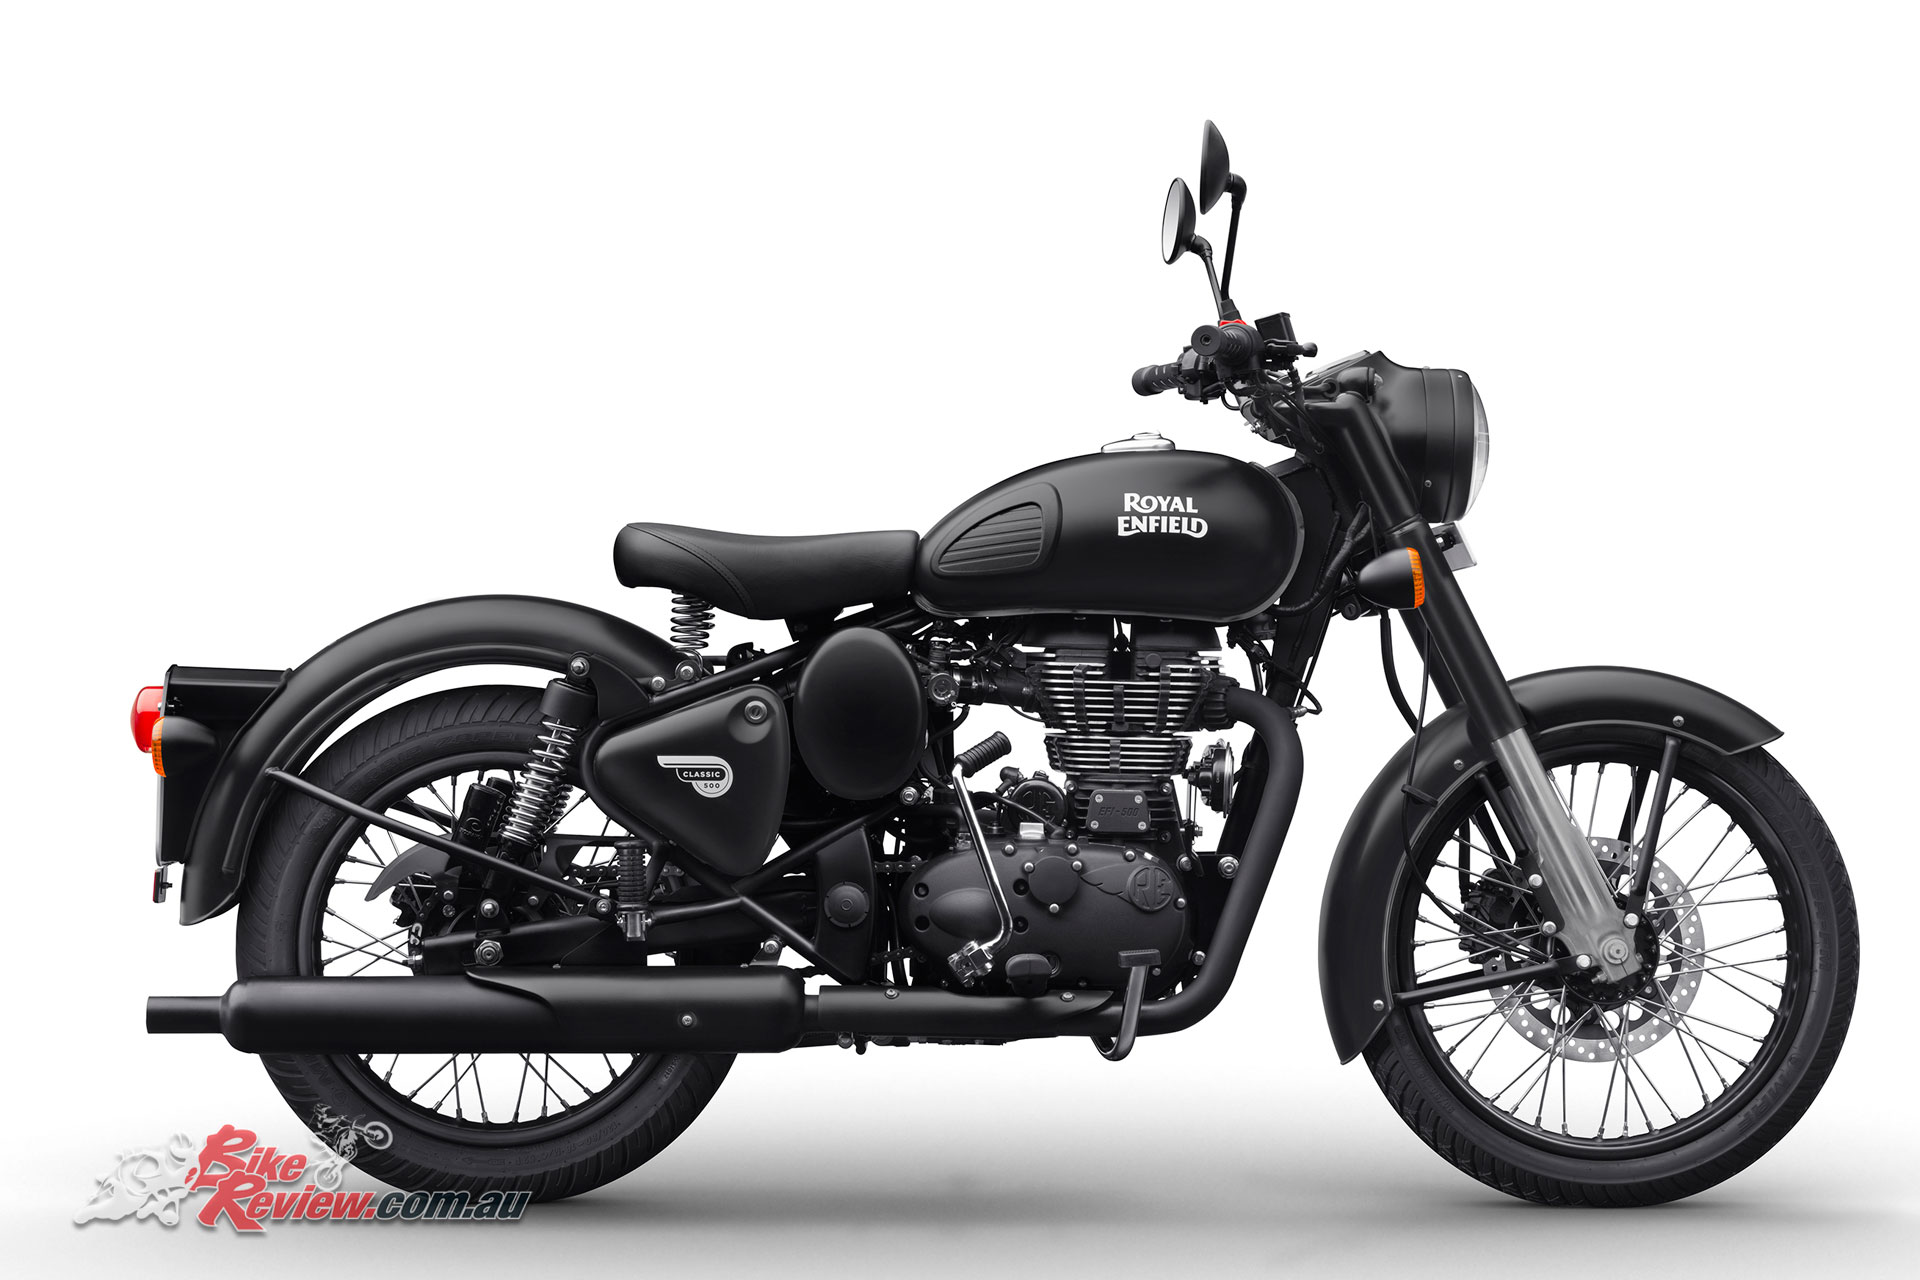 2018 Royal Enfield Classic 500 in Stealth Black